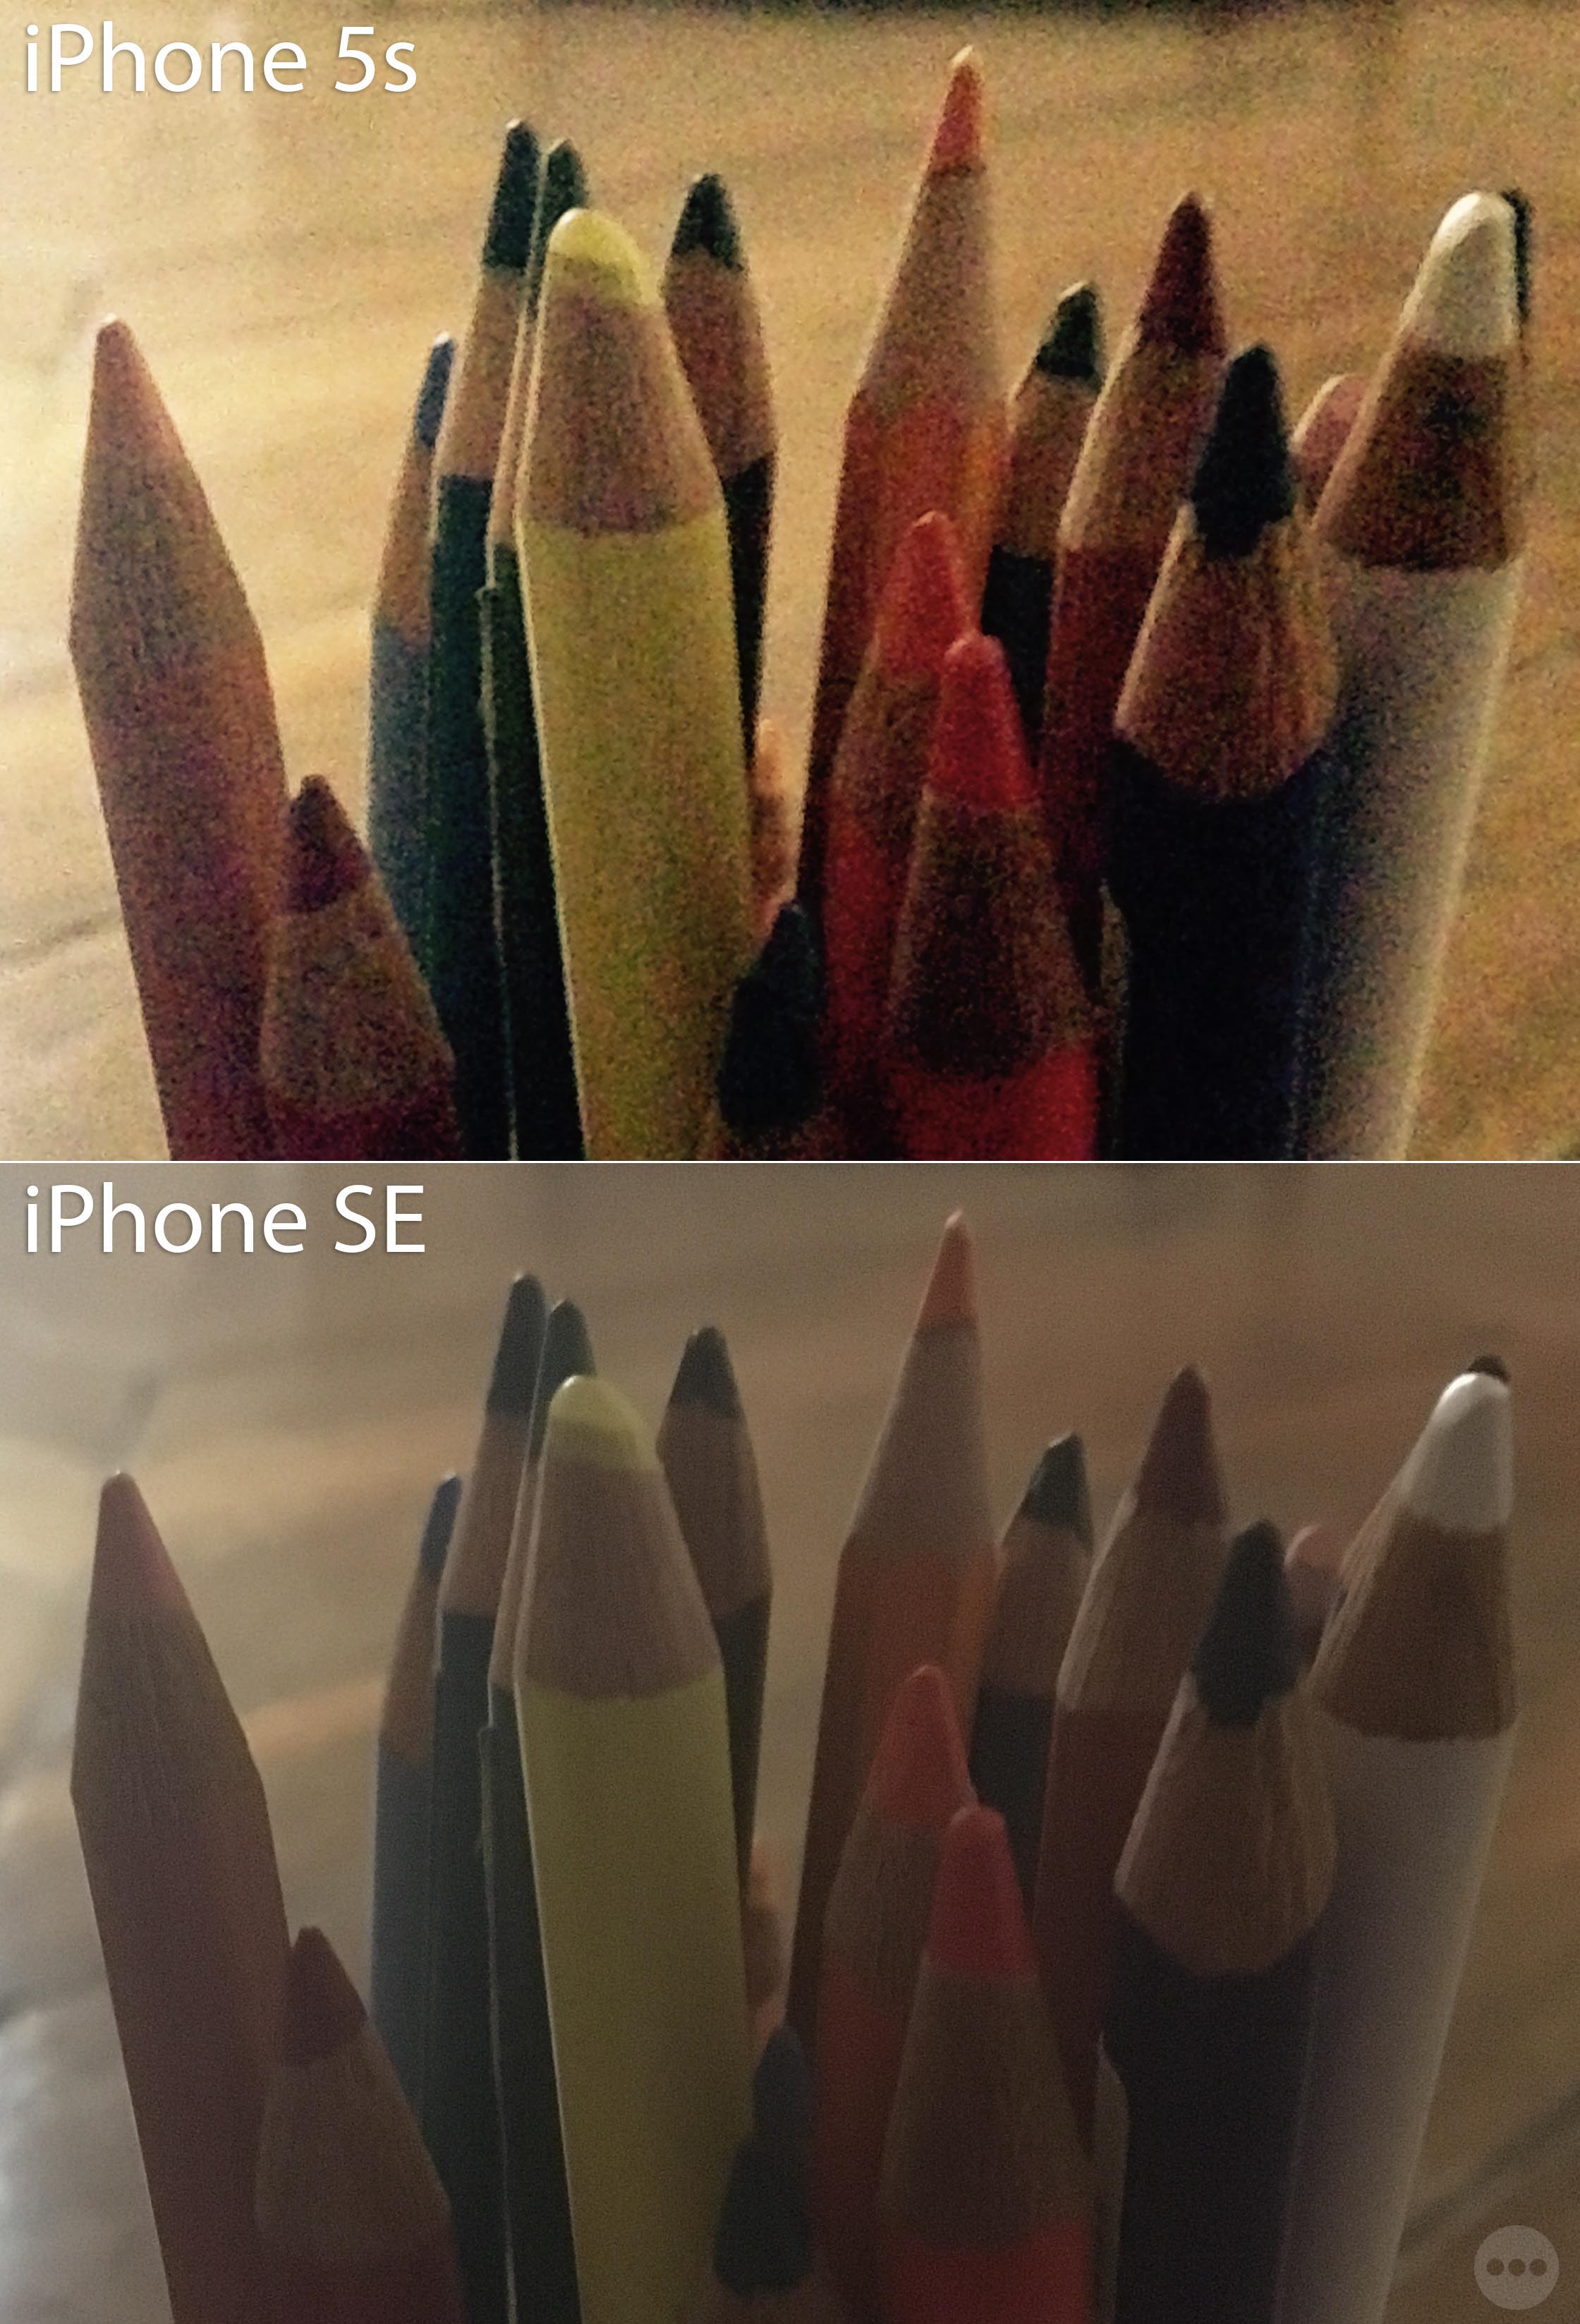 iPhone SE 5s comparaison